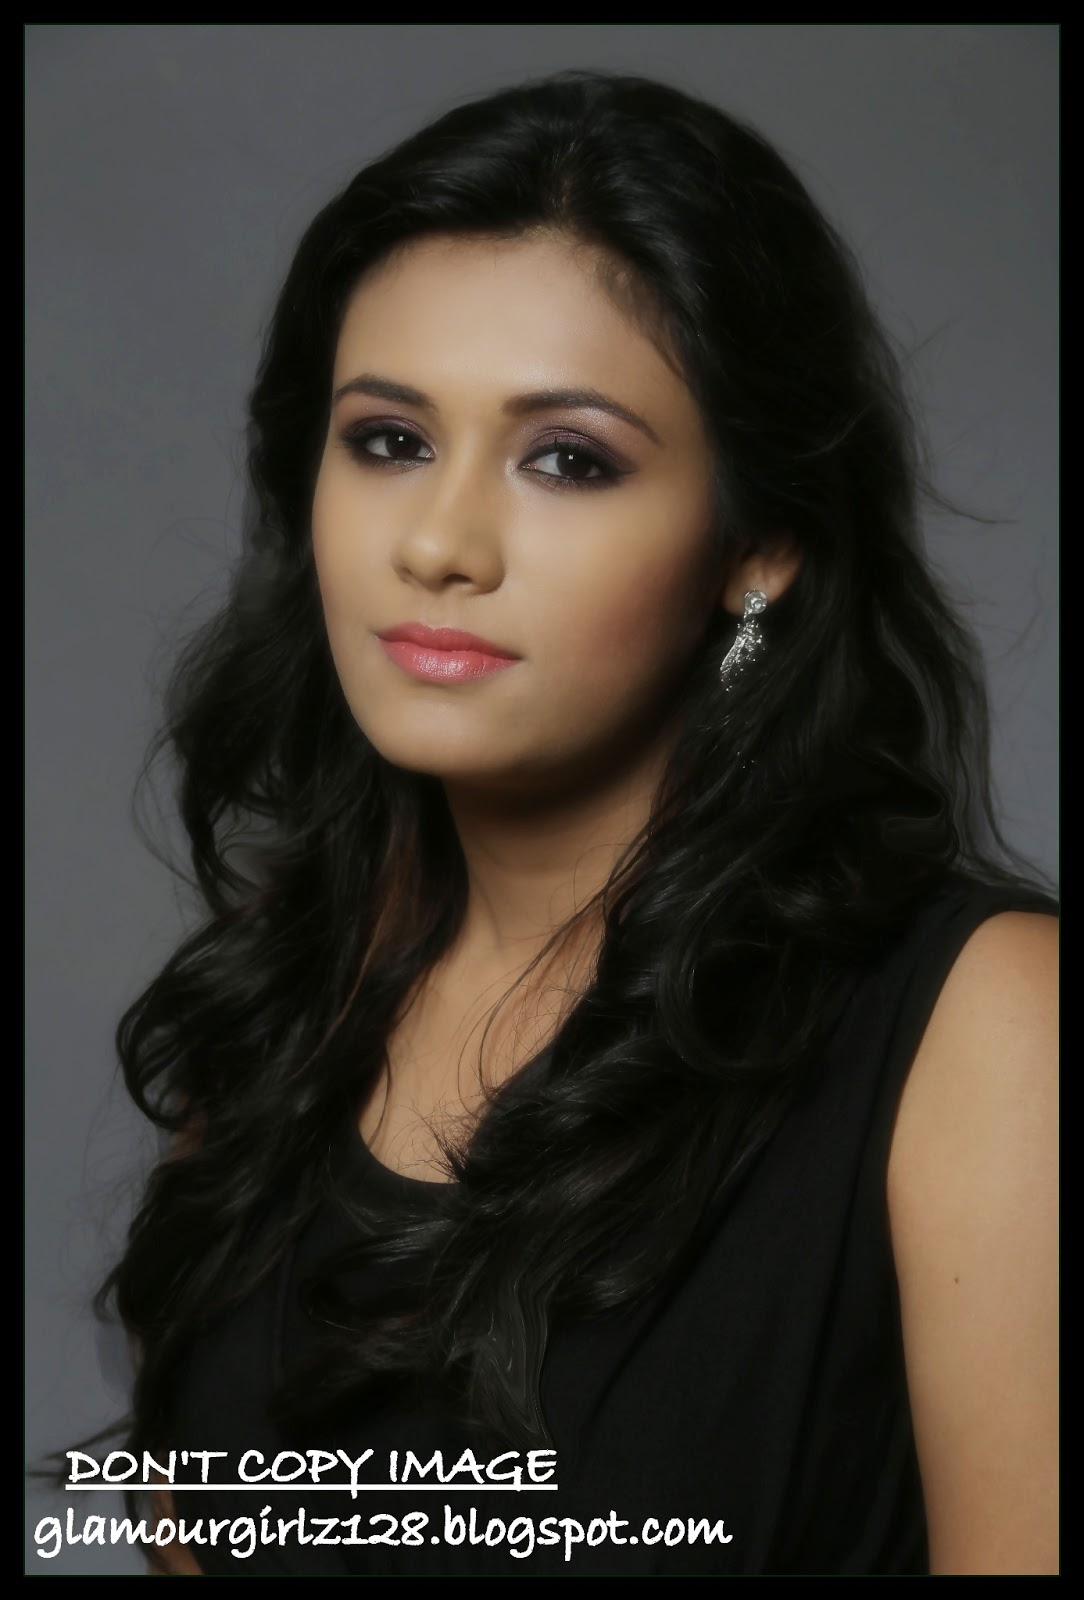 Photo-shoot done using the L'Or sunset collection by L'Oreal